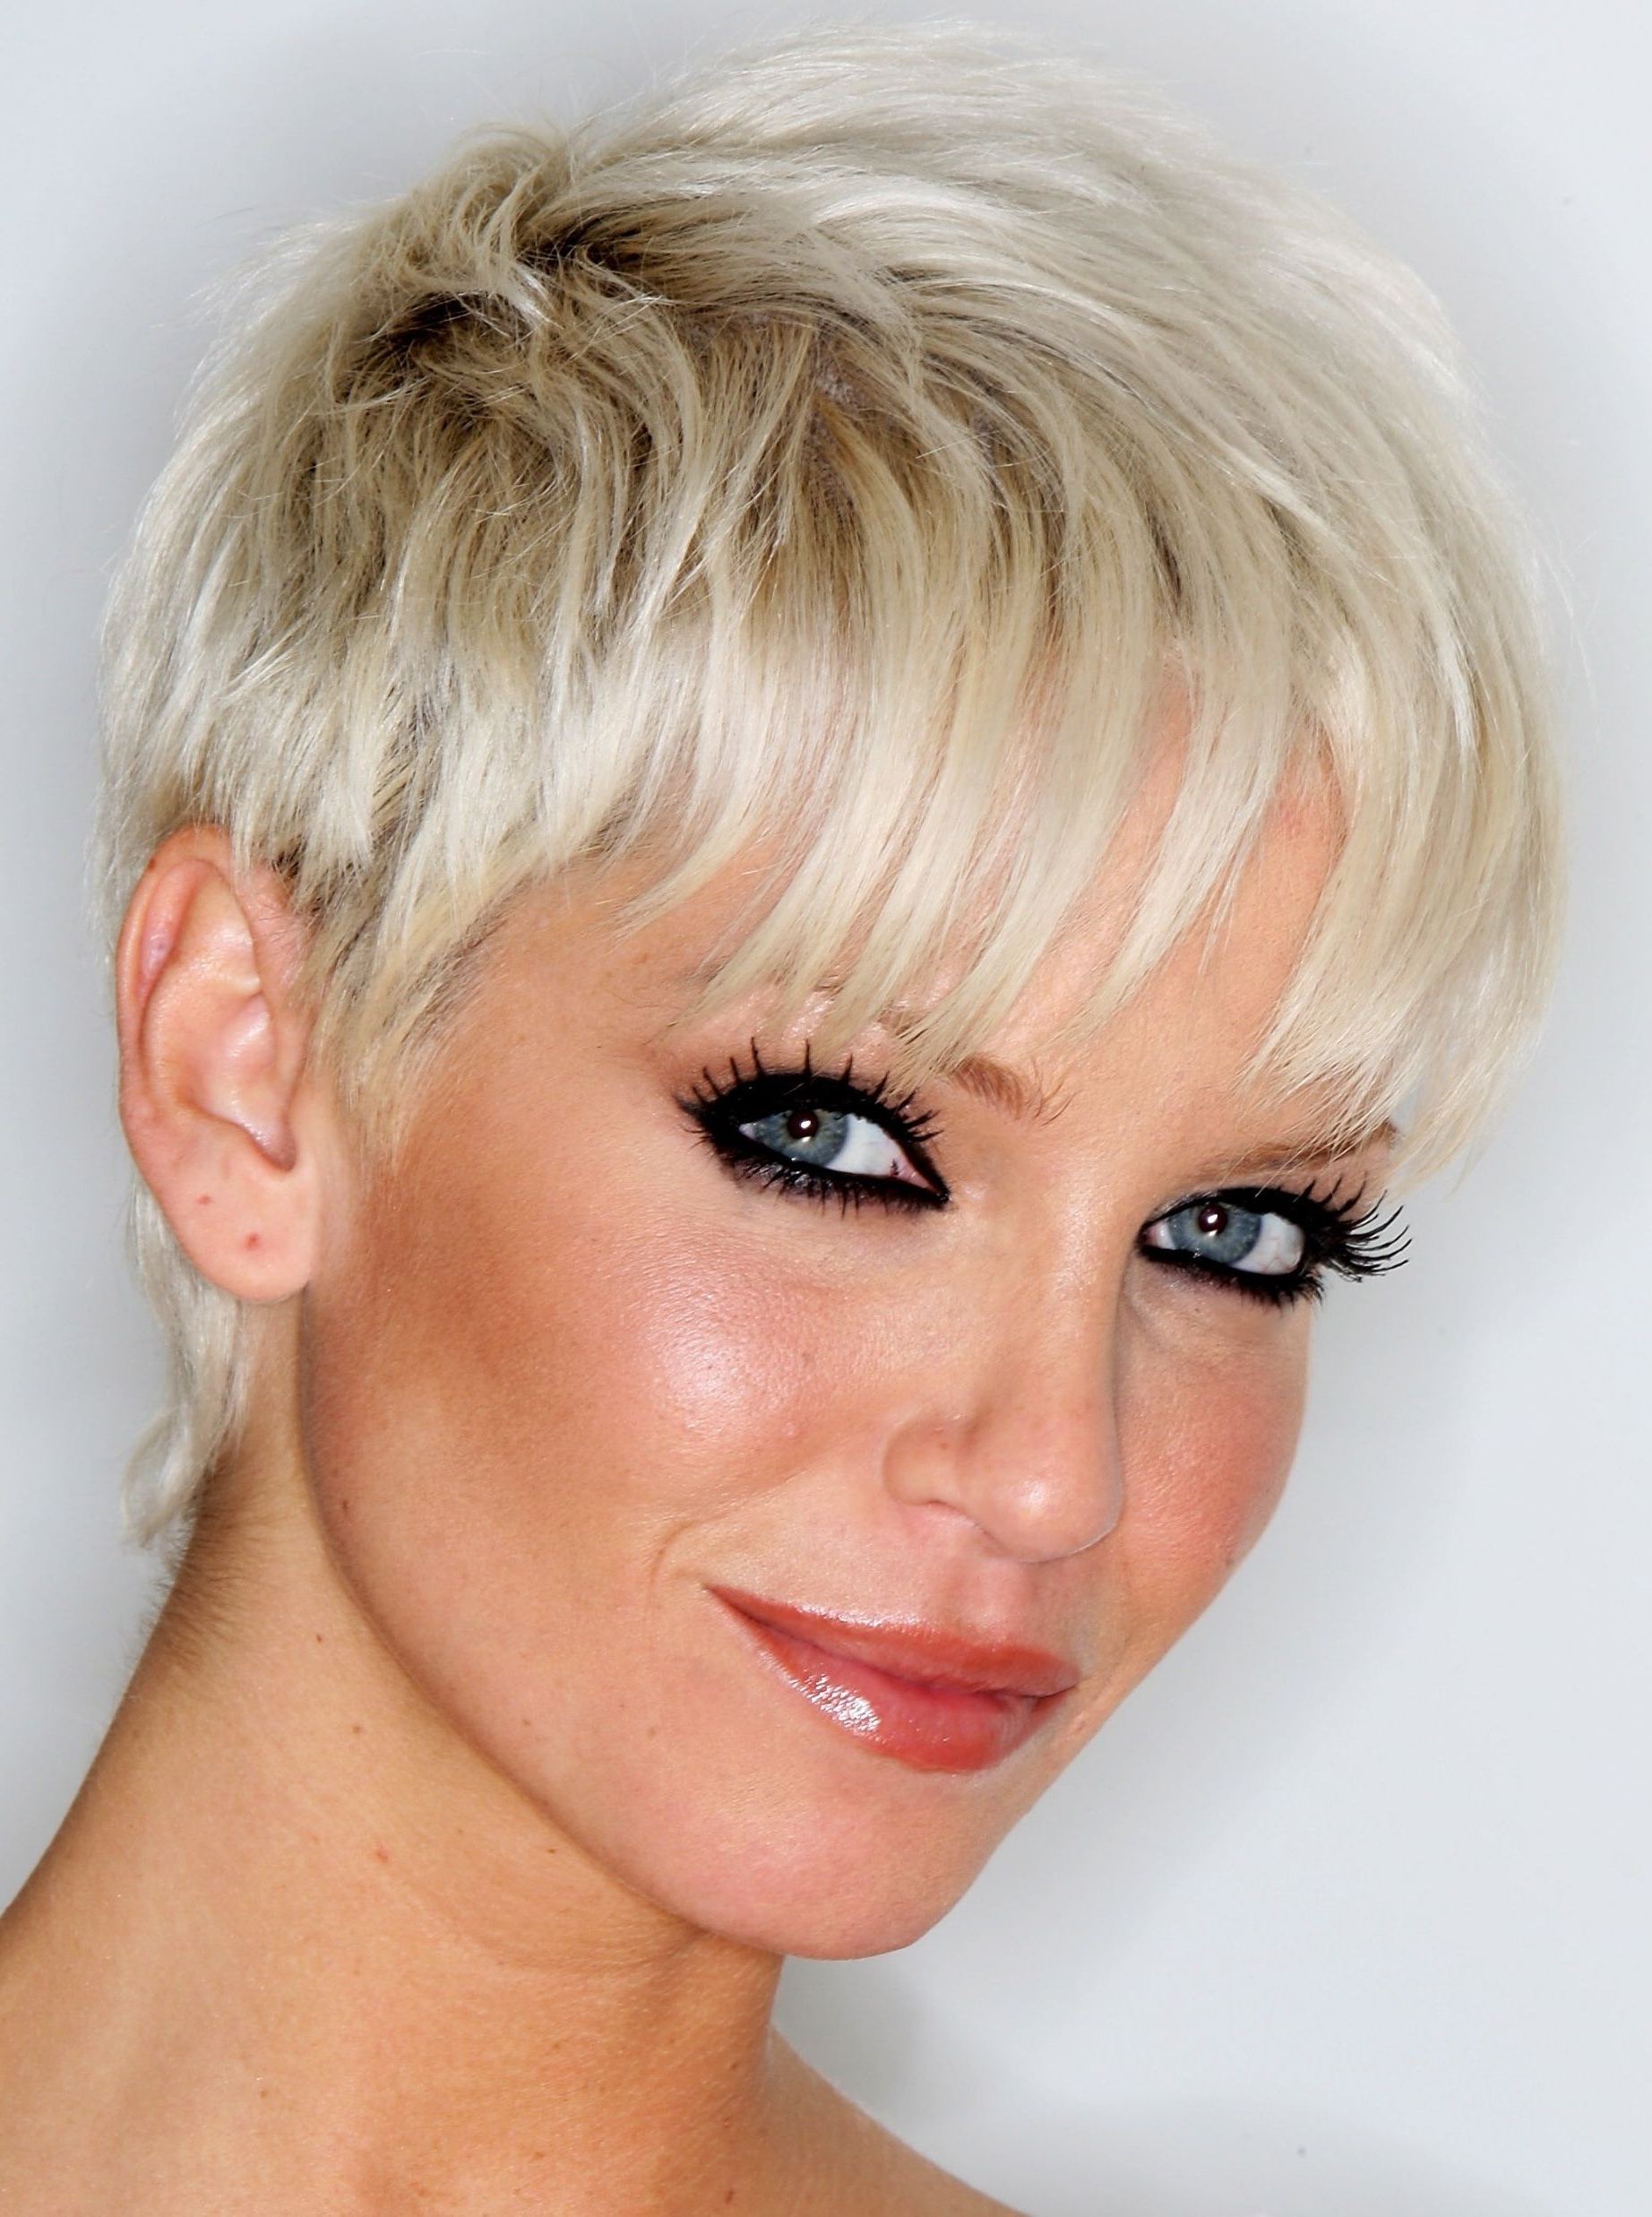 Rock The Best Hairstyle For Your Body Type | Beauty & Fashion With Short Hairstyles For Petite Faces (View 23 of 25)